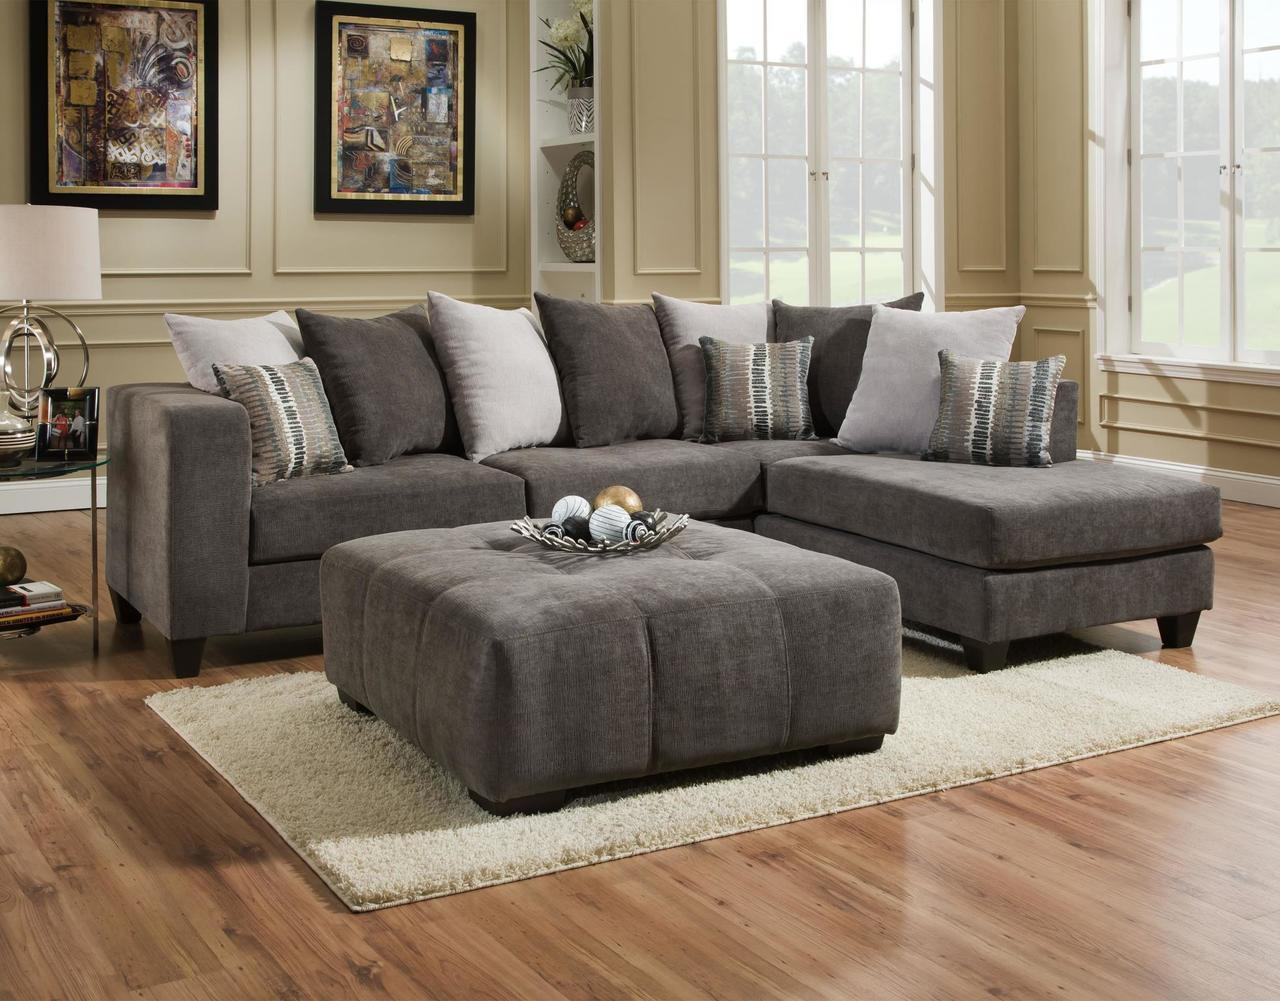 Phenomenal Heavenly Mocha 2 Piece Sectional Squirreltailoven Fun Painted Chair Ideas Images Squirreltailovenorg